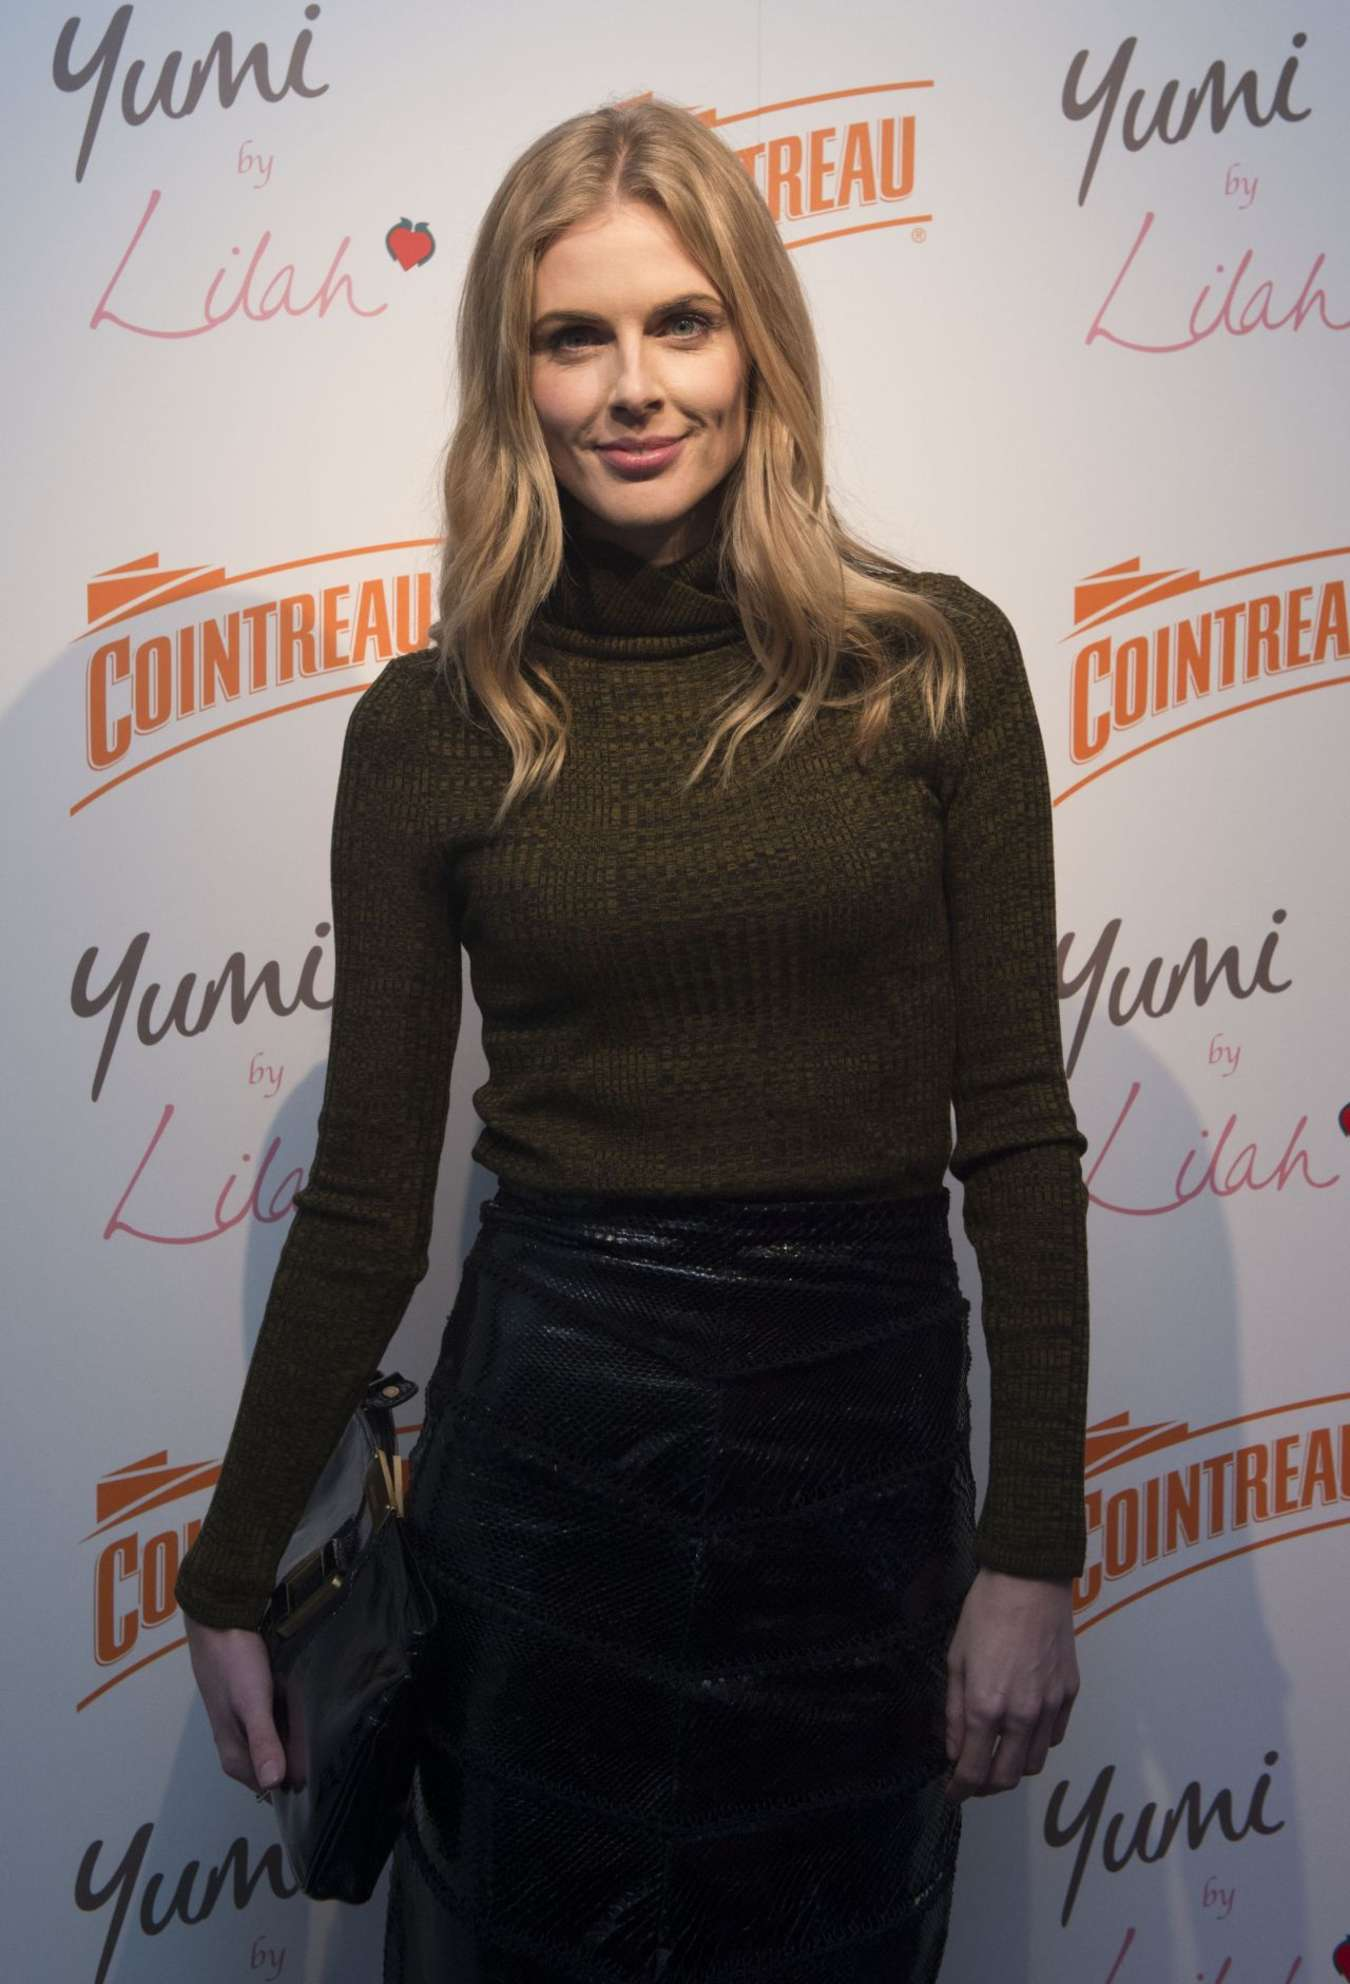 Donna Air Cointreau Launch Party for Yumi By Lilah Collection in London